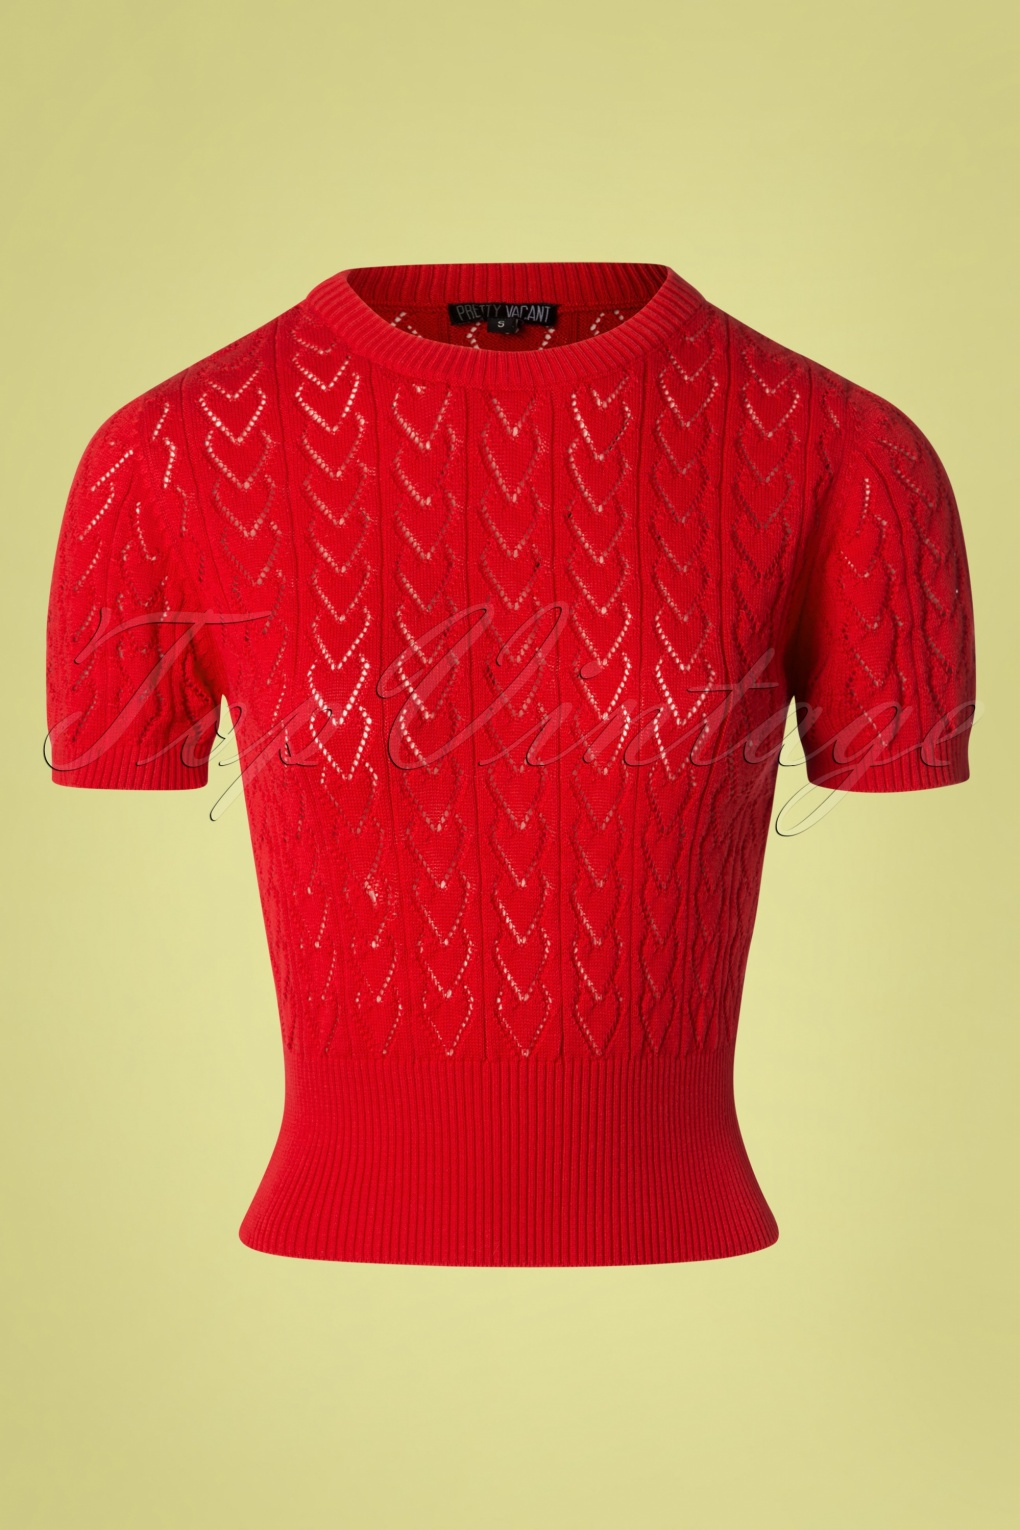 Vintage Sweaters: Cable Knit, Fair Isle Cardigans & Sweaters 60s Heart Crew Top in Red �49.90 AT vintagedancer.com